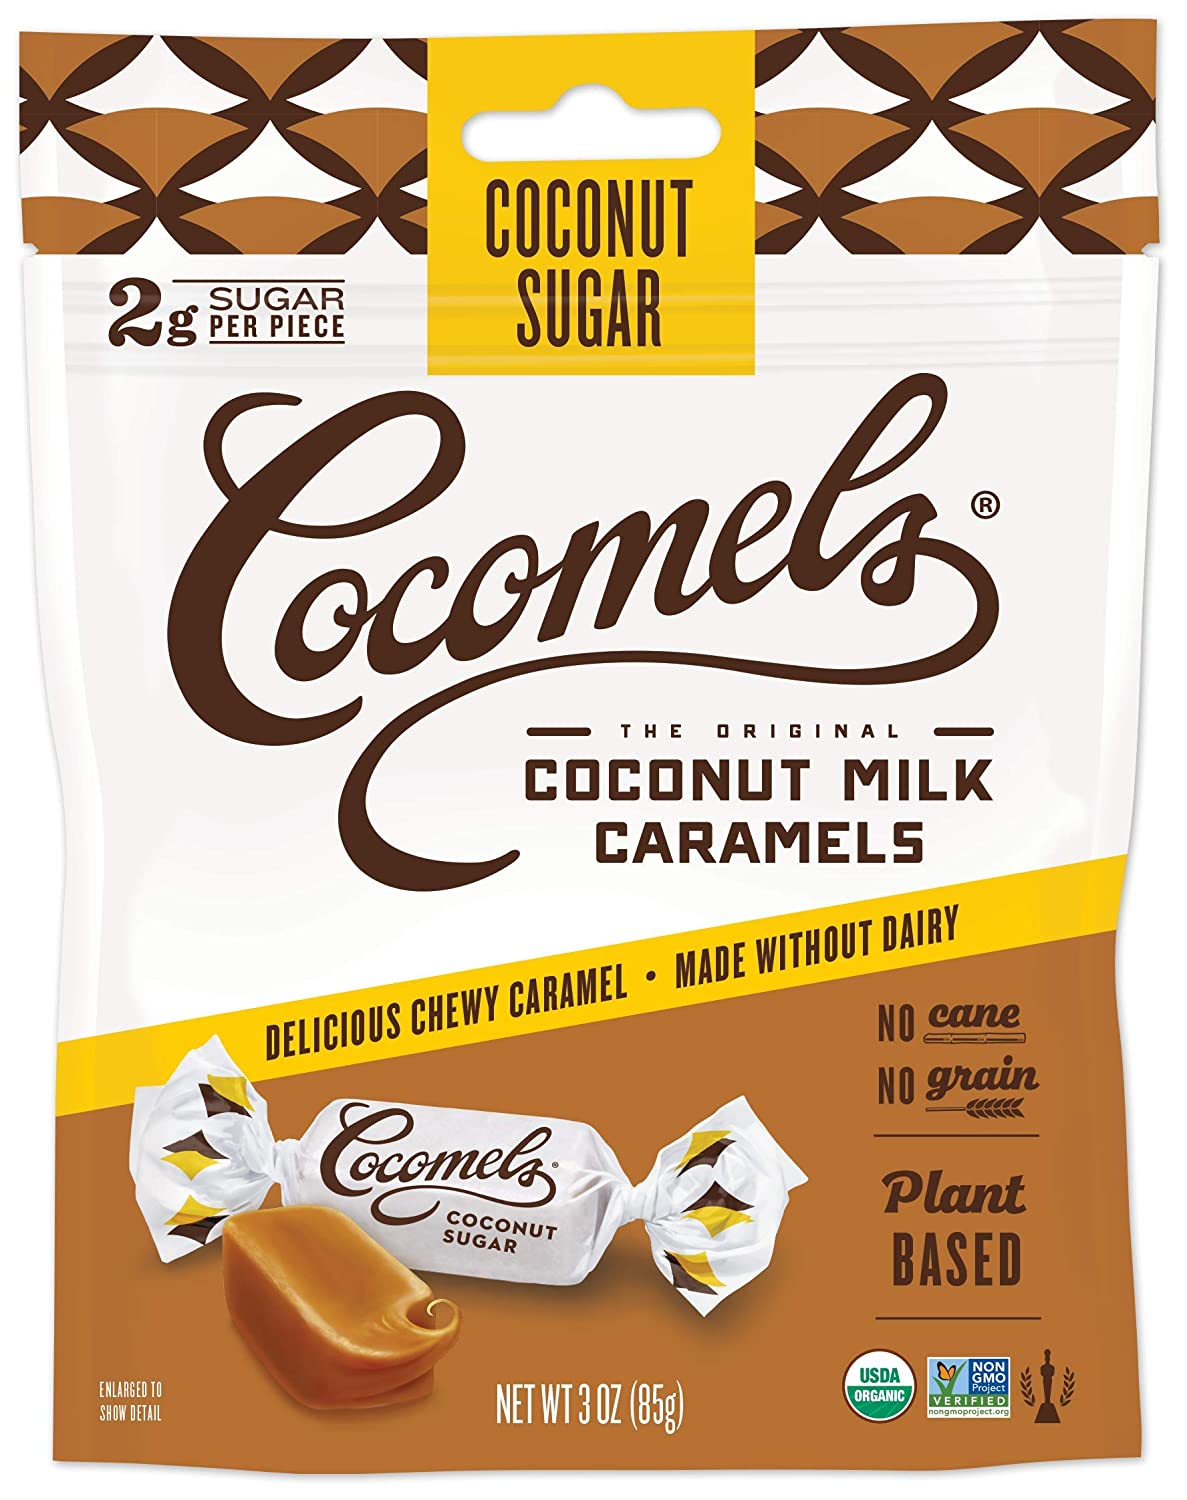 Cocomels Coconut Milk Caramels With Coconut Sugar, Organic Candy, Dairy Free, Sugar Free, Vegan, Gluten Free, Non-GMO, No Cane Sugar, No High Fructose Corn Syrup, Kosher, Plant Based, (1Pack)